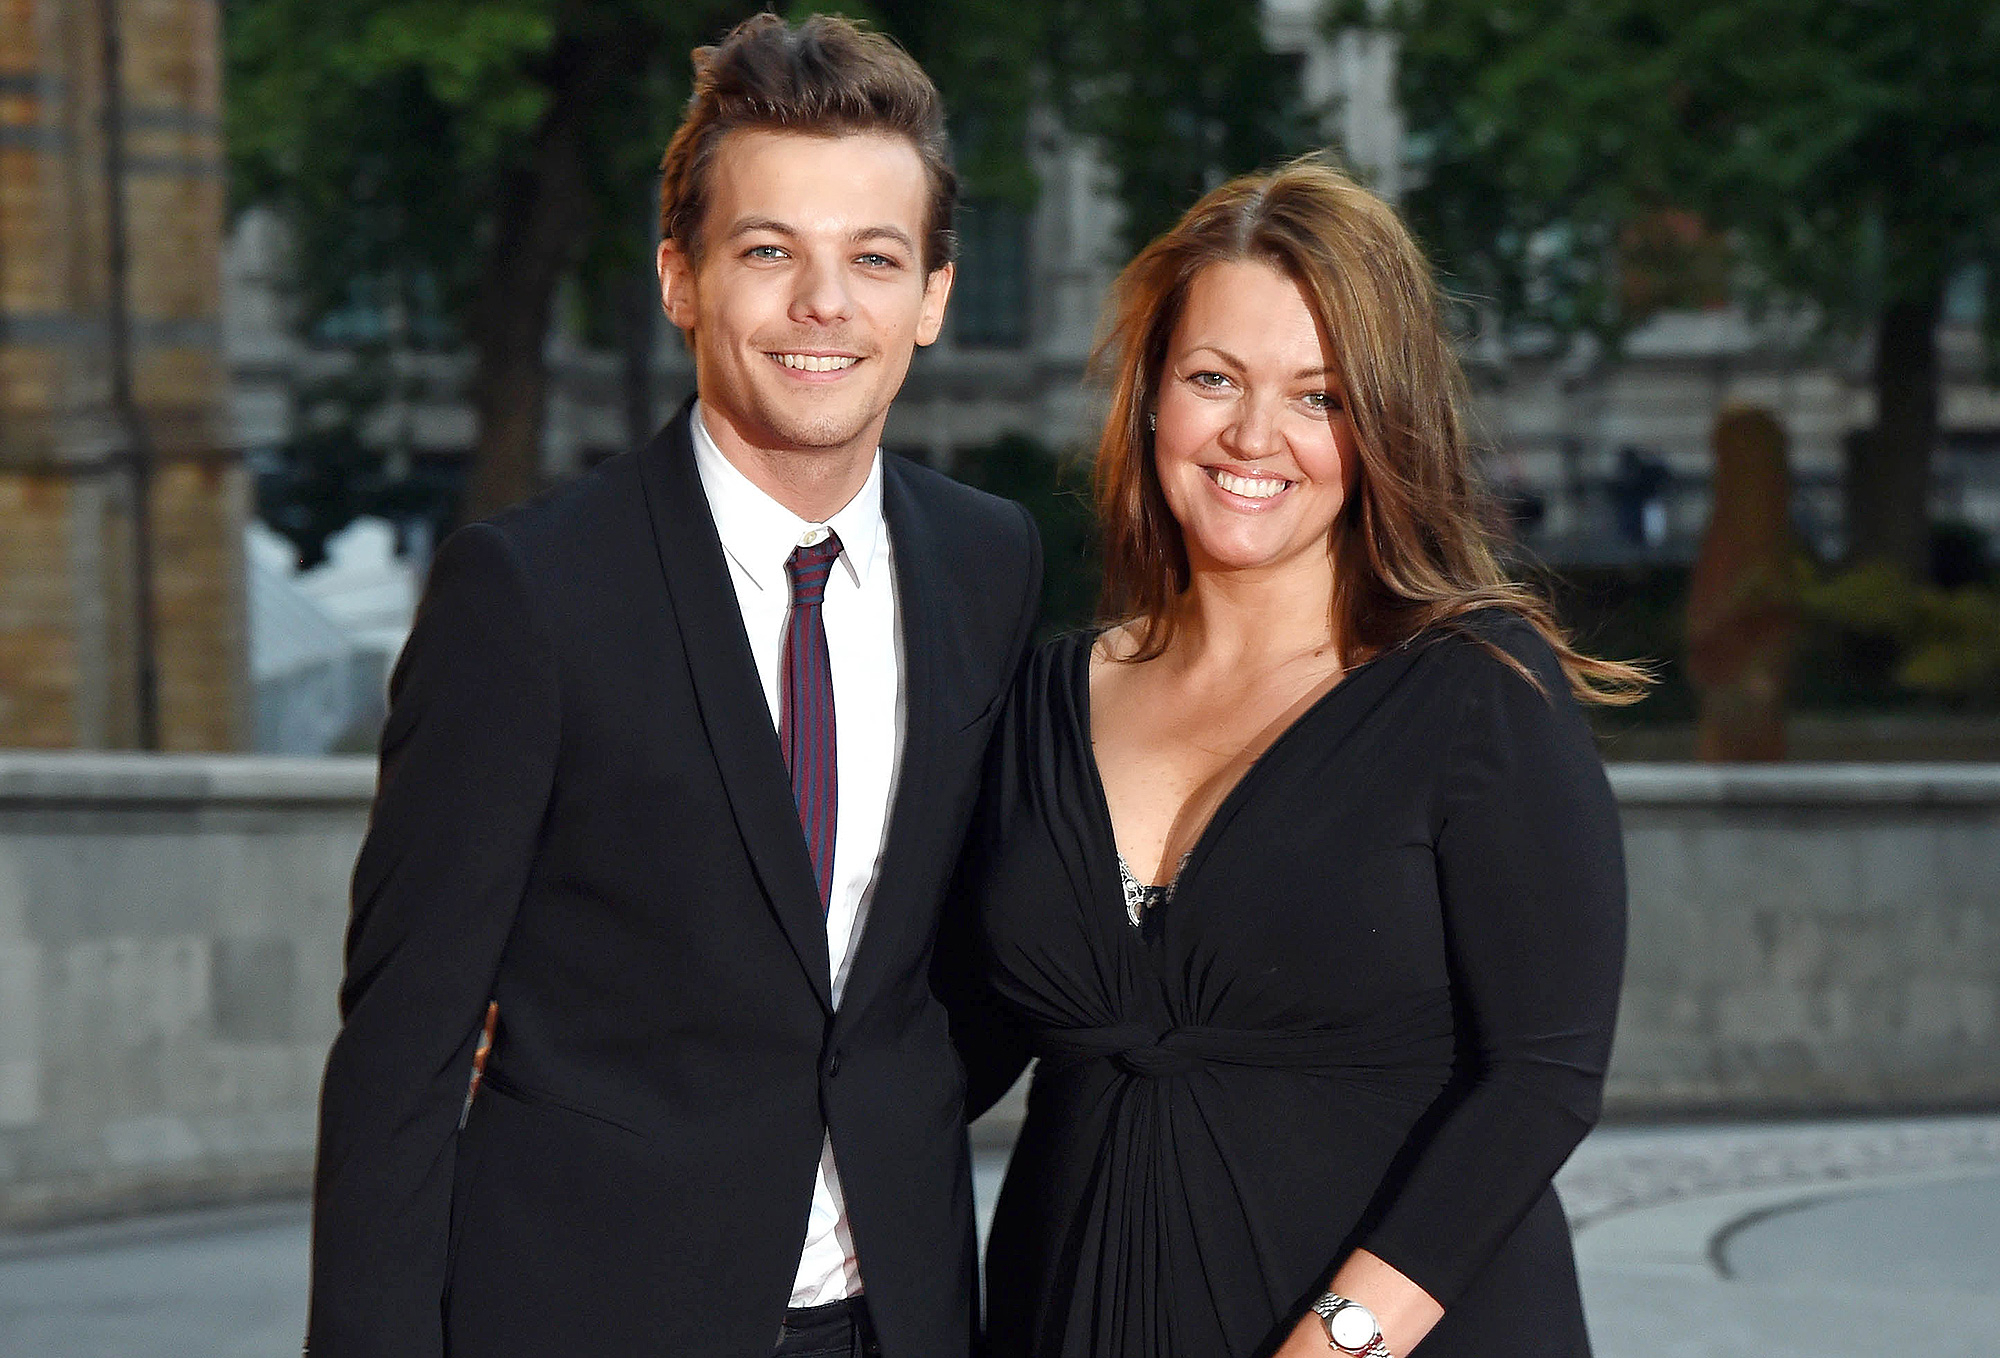 Louis Tomlinson and Johannah Poulston